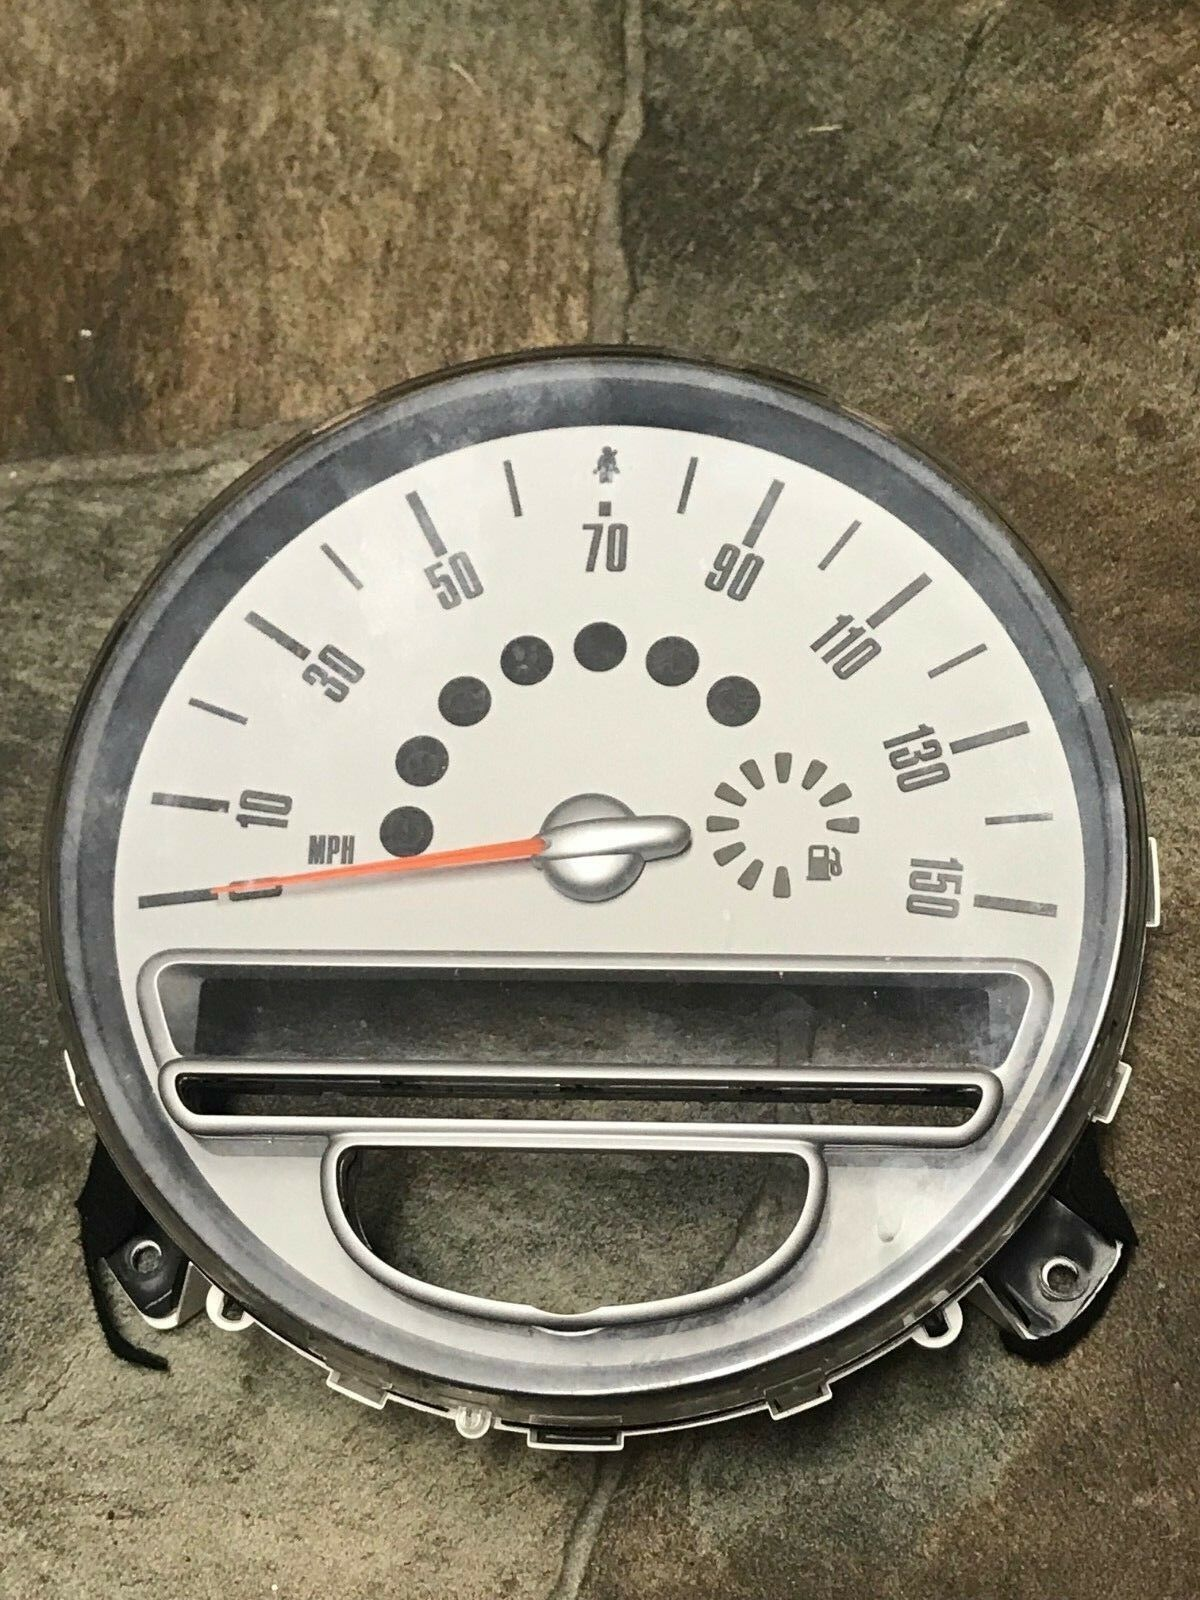 Mini Cooper Speedo Speedometer Head Cluster BMW part No 9 136 196 150mph